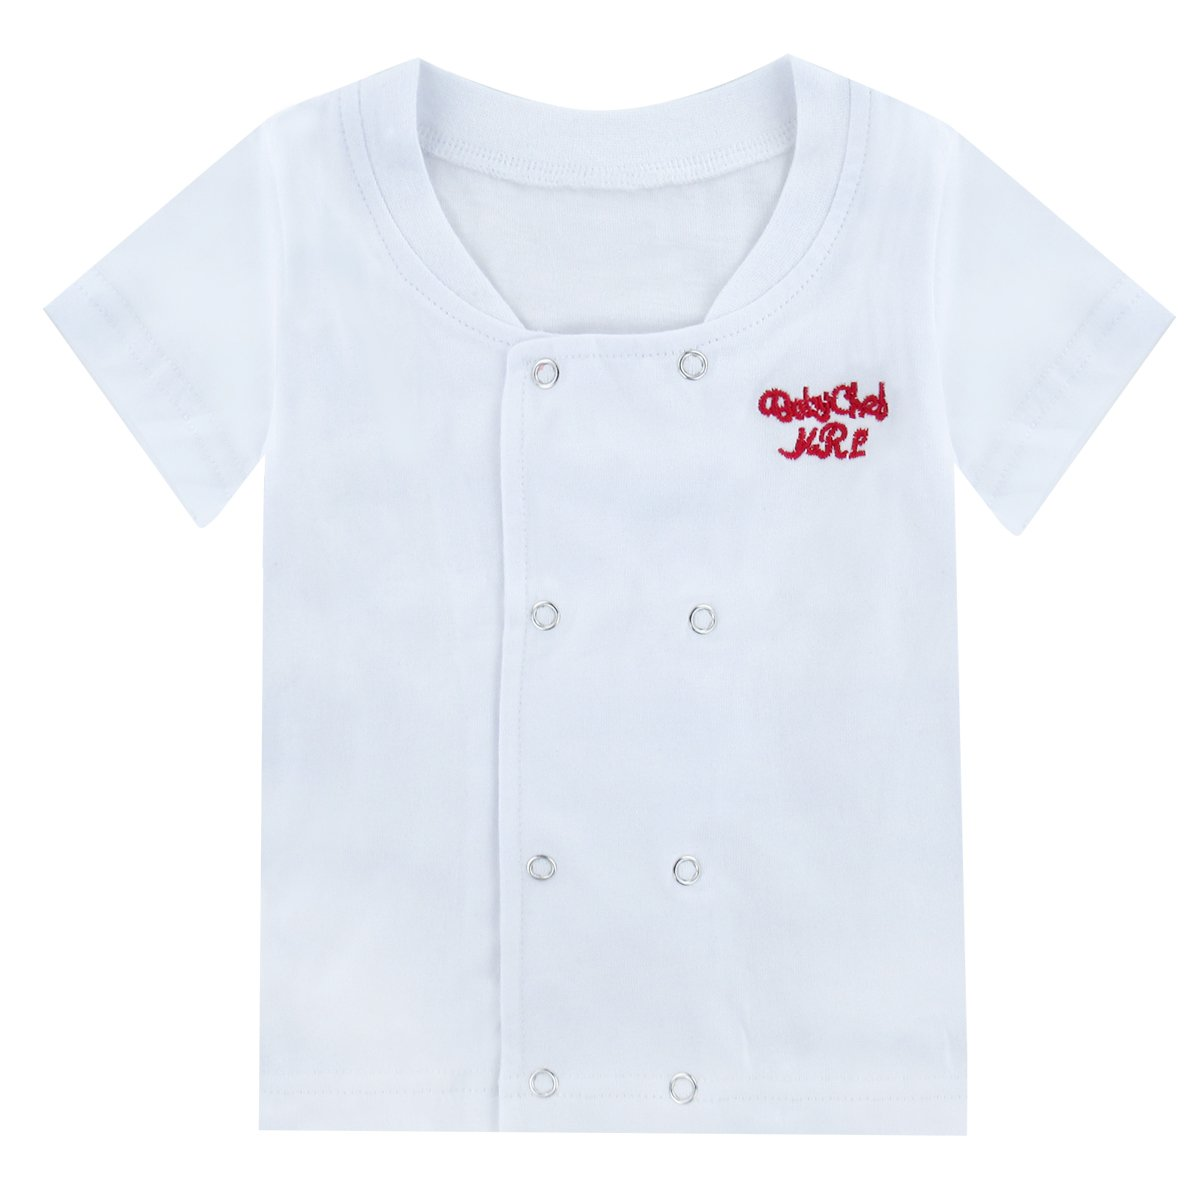 Mombebe Baby Boys' 3 Pieces Chef Short Clothing Set with Hat (0-6 Months, Short Sleeve) by Mombebe (Image #2)